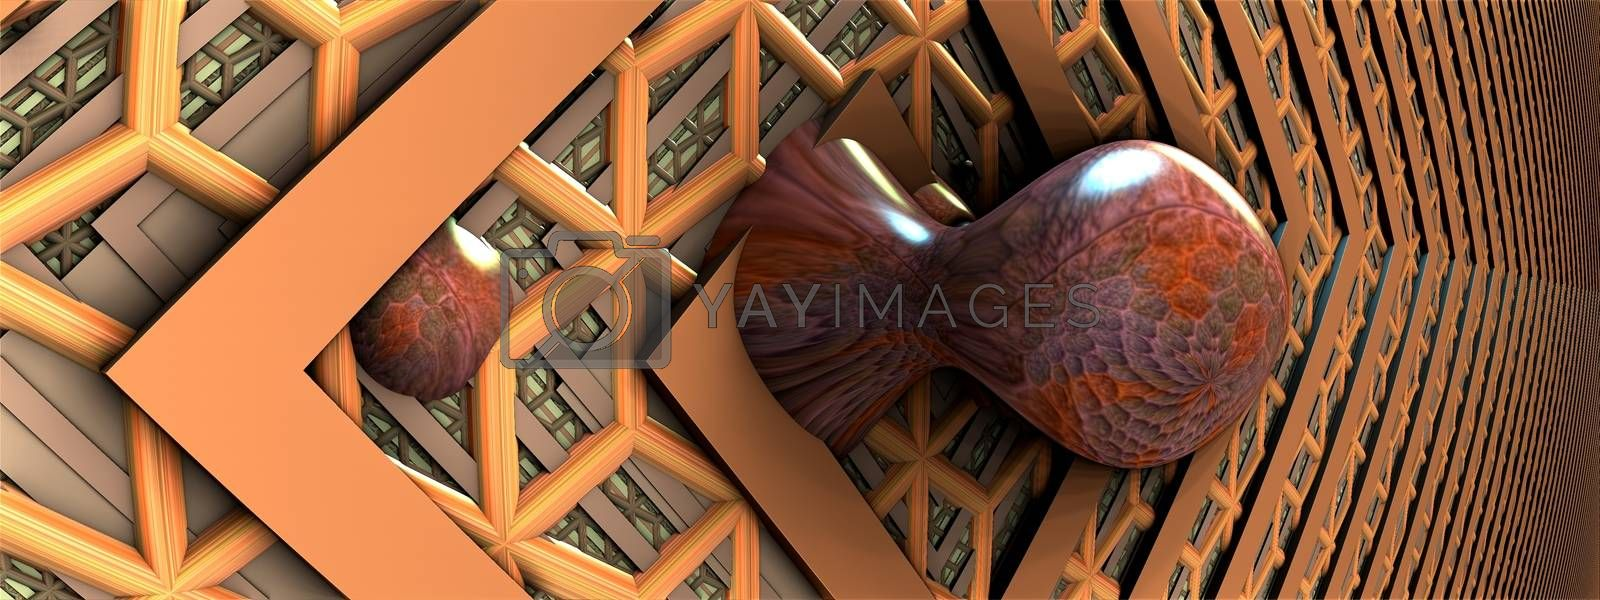 3D illustration of colorful virtual scenery for creative design, art and entertainment